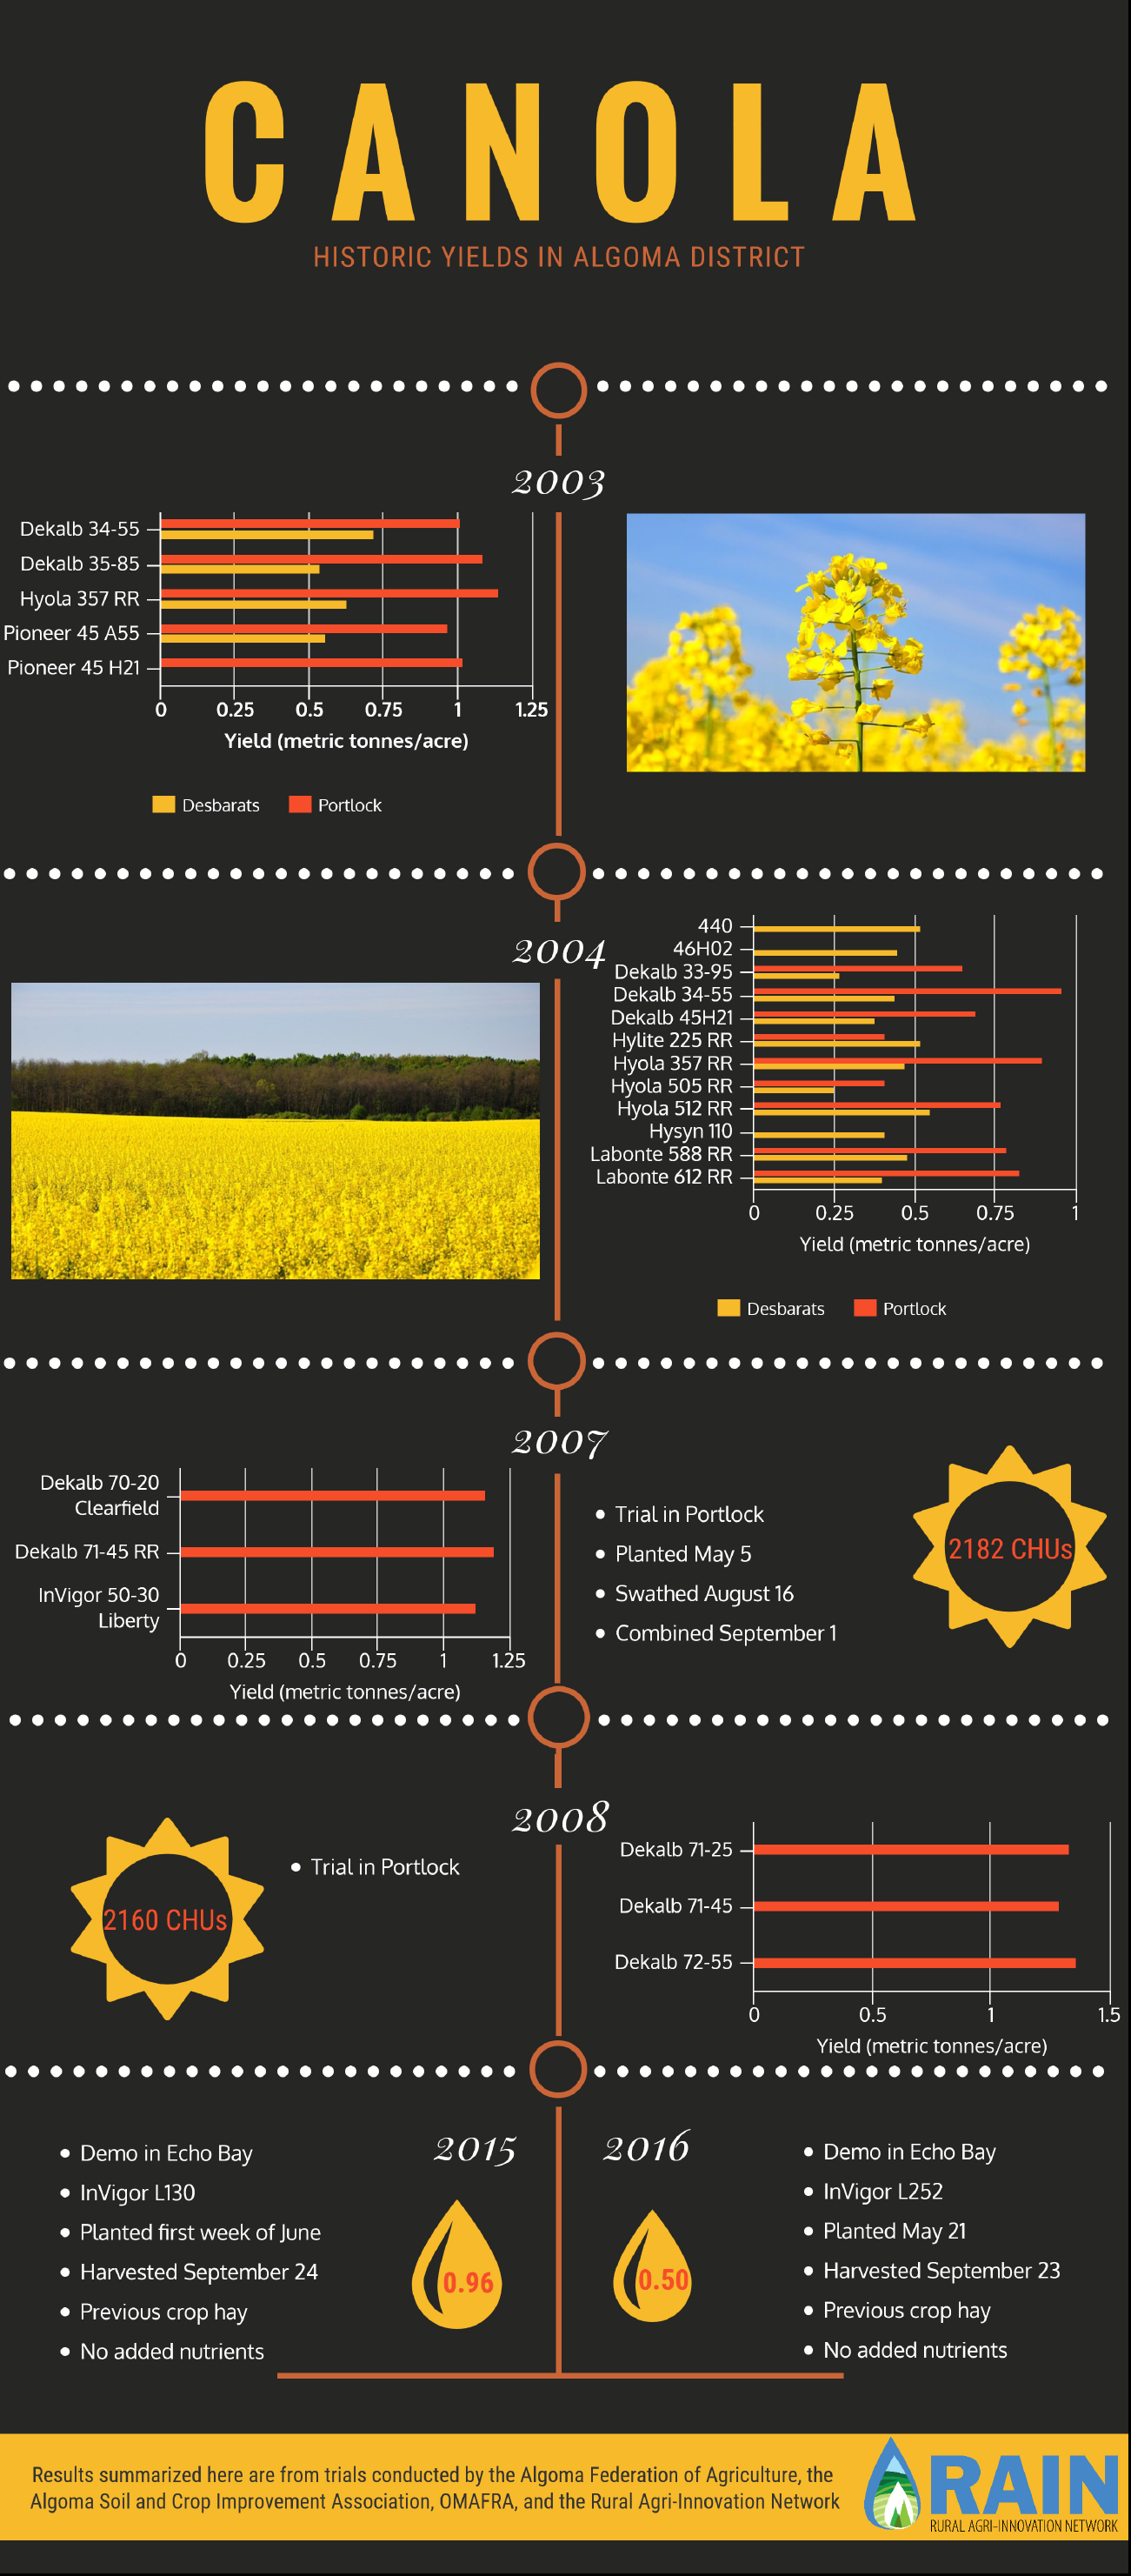 canola historic yields